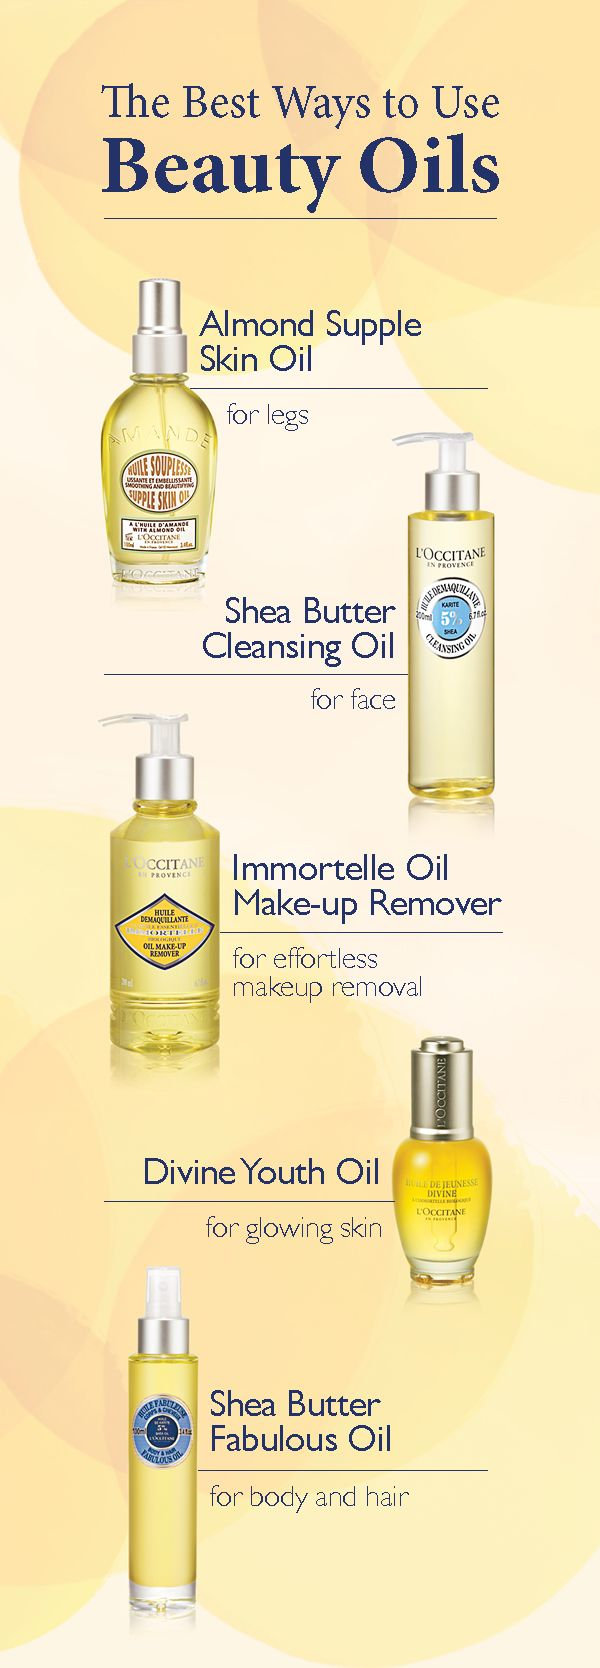 Do you know how to best use beauty oils? Follow L'OCCITANE's tips on how to integrate oils into your beauty routine. Use Almond Supple Skin Oil, rich in omega-3, to nourish skin. Use Shea Butter Cleansing Oil to cleanse and hydrate the face. Use Immortelle Oil Make-up Remover to remove makeup, leaving skin soft. Use Divine Youth Oil, formulated with organic, anti-aging Immortelle essential oil, for a youthful glow. Use Shea Butter Fabulous Oil on body and hair for lasting moisture and shine.